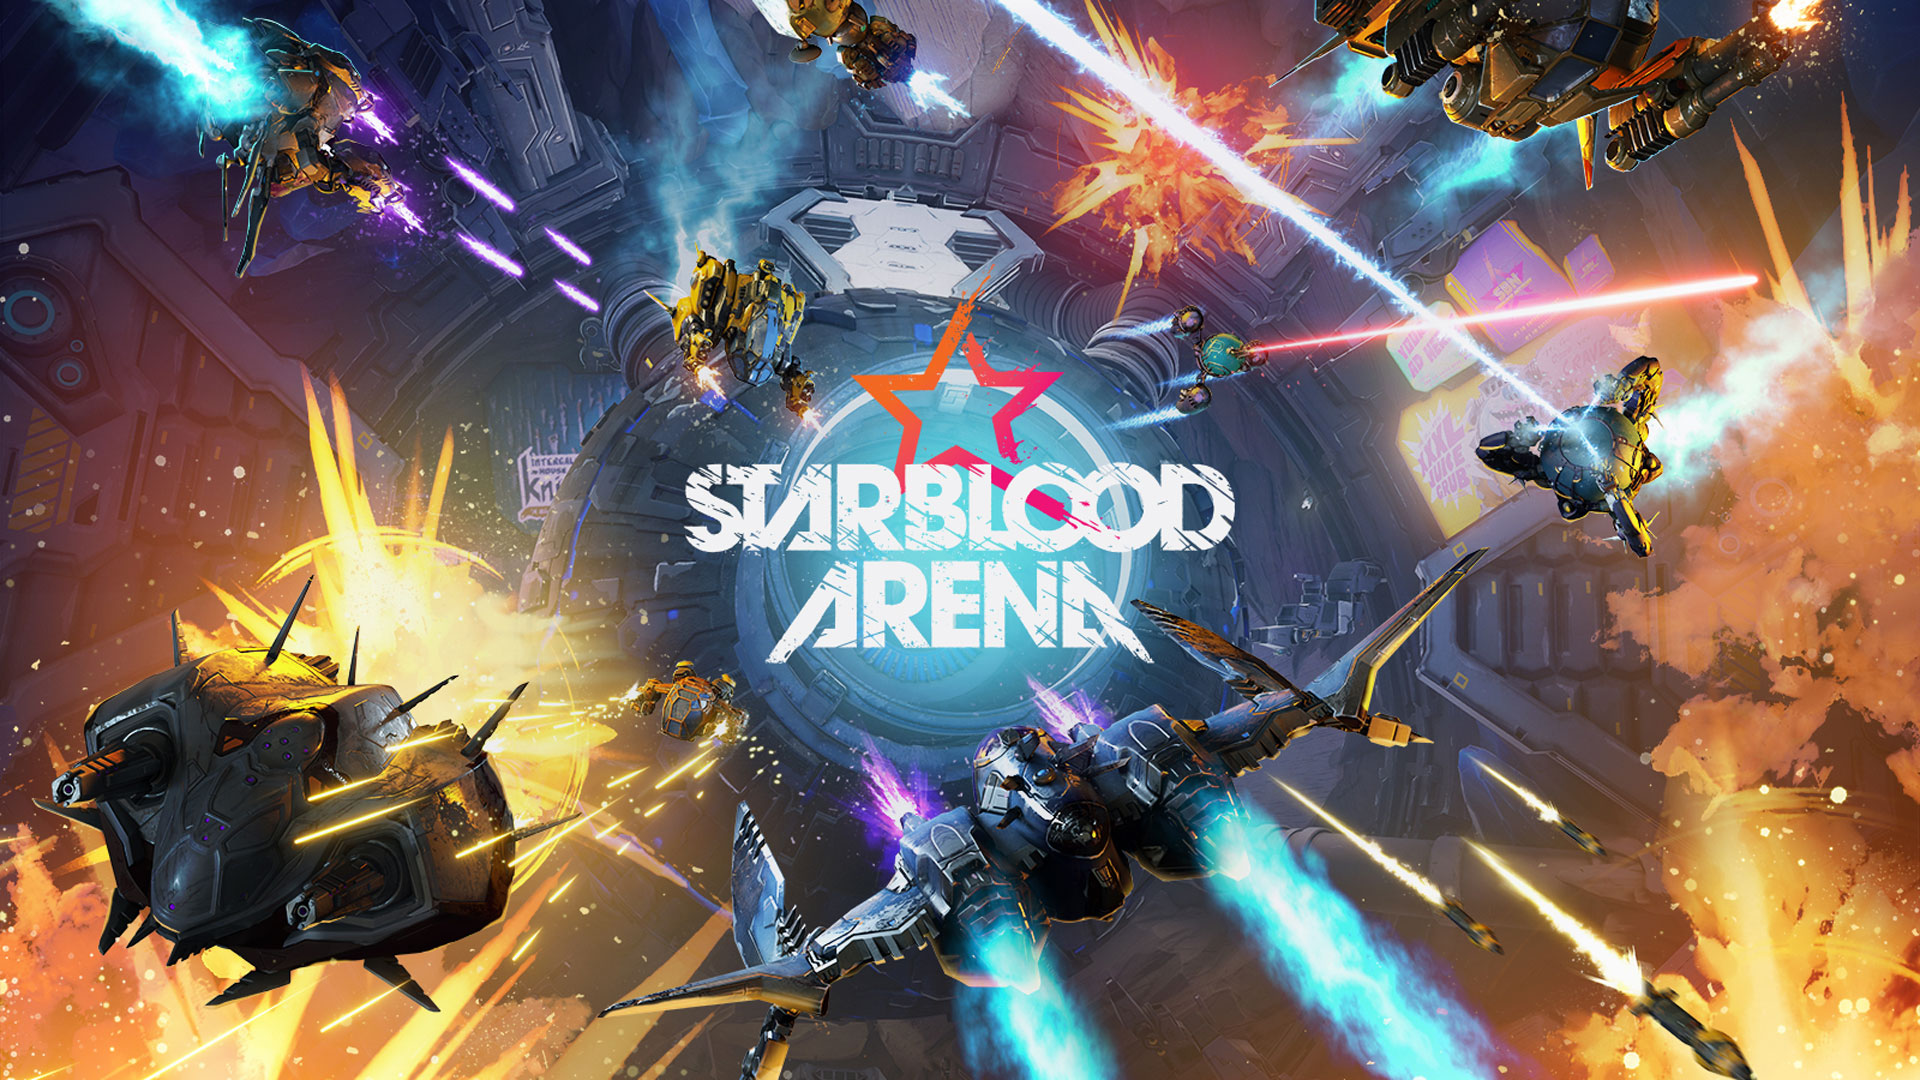 Starblood Arena PlayStation VR vrplayer.fr